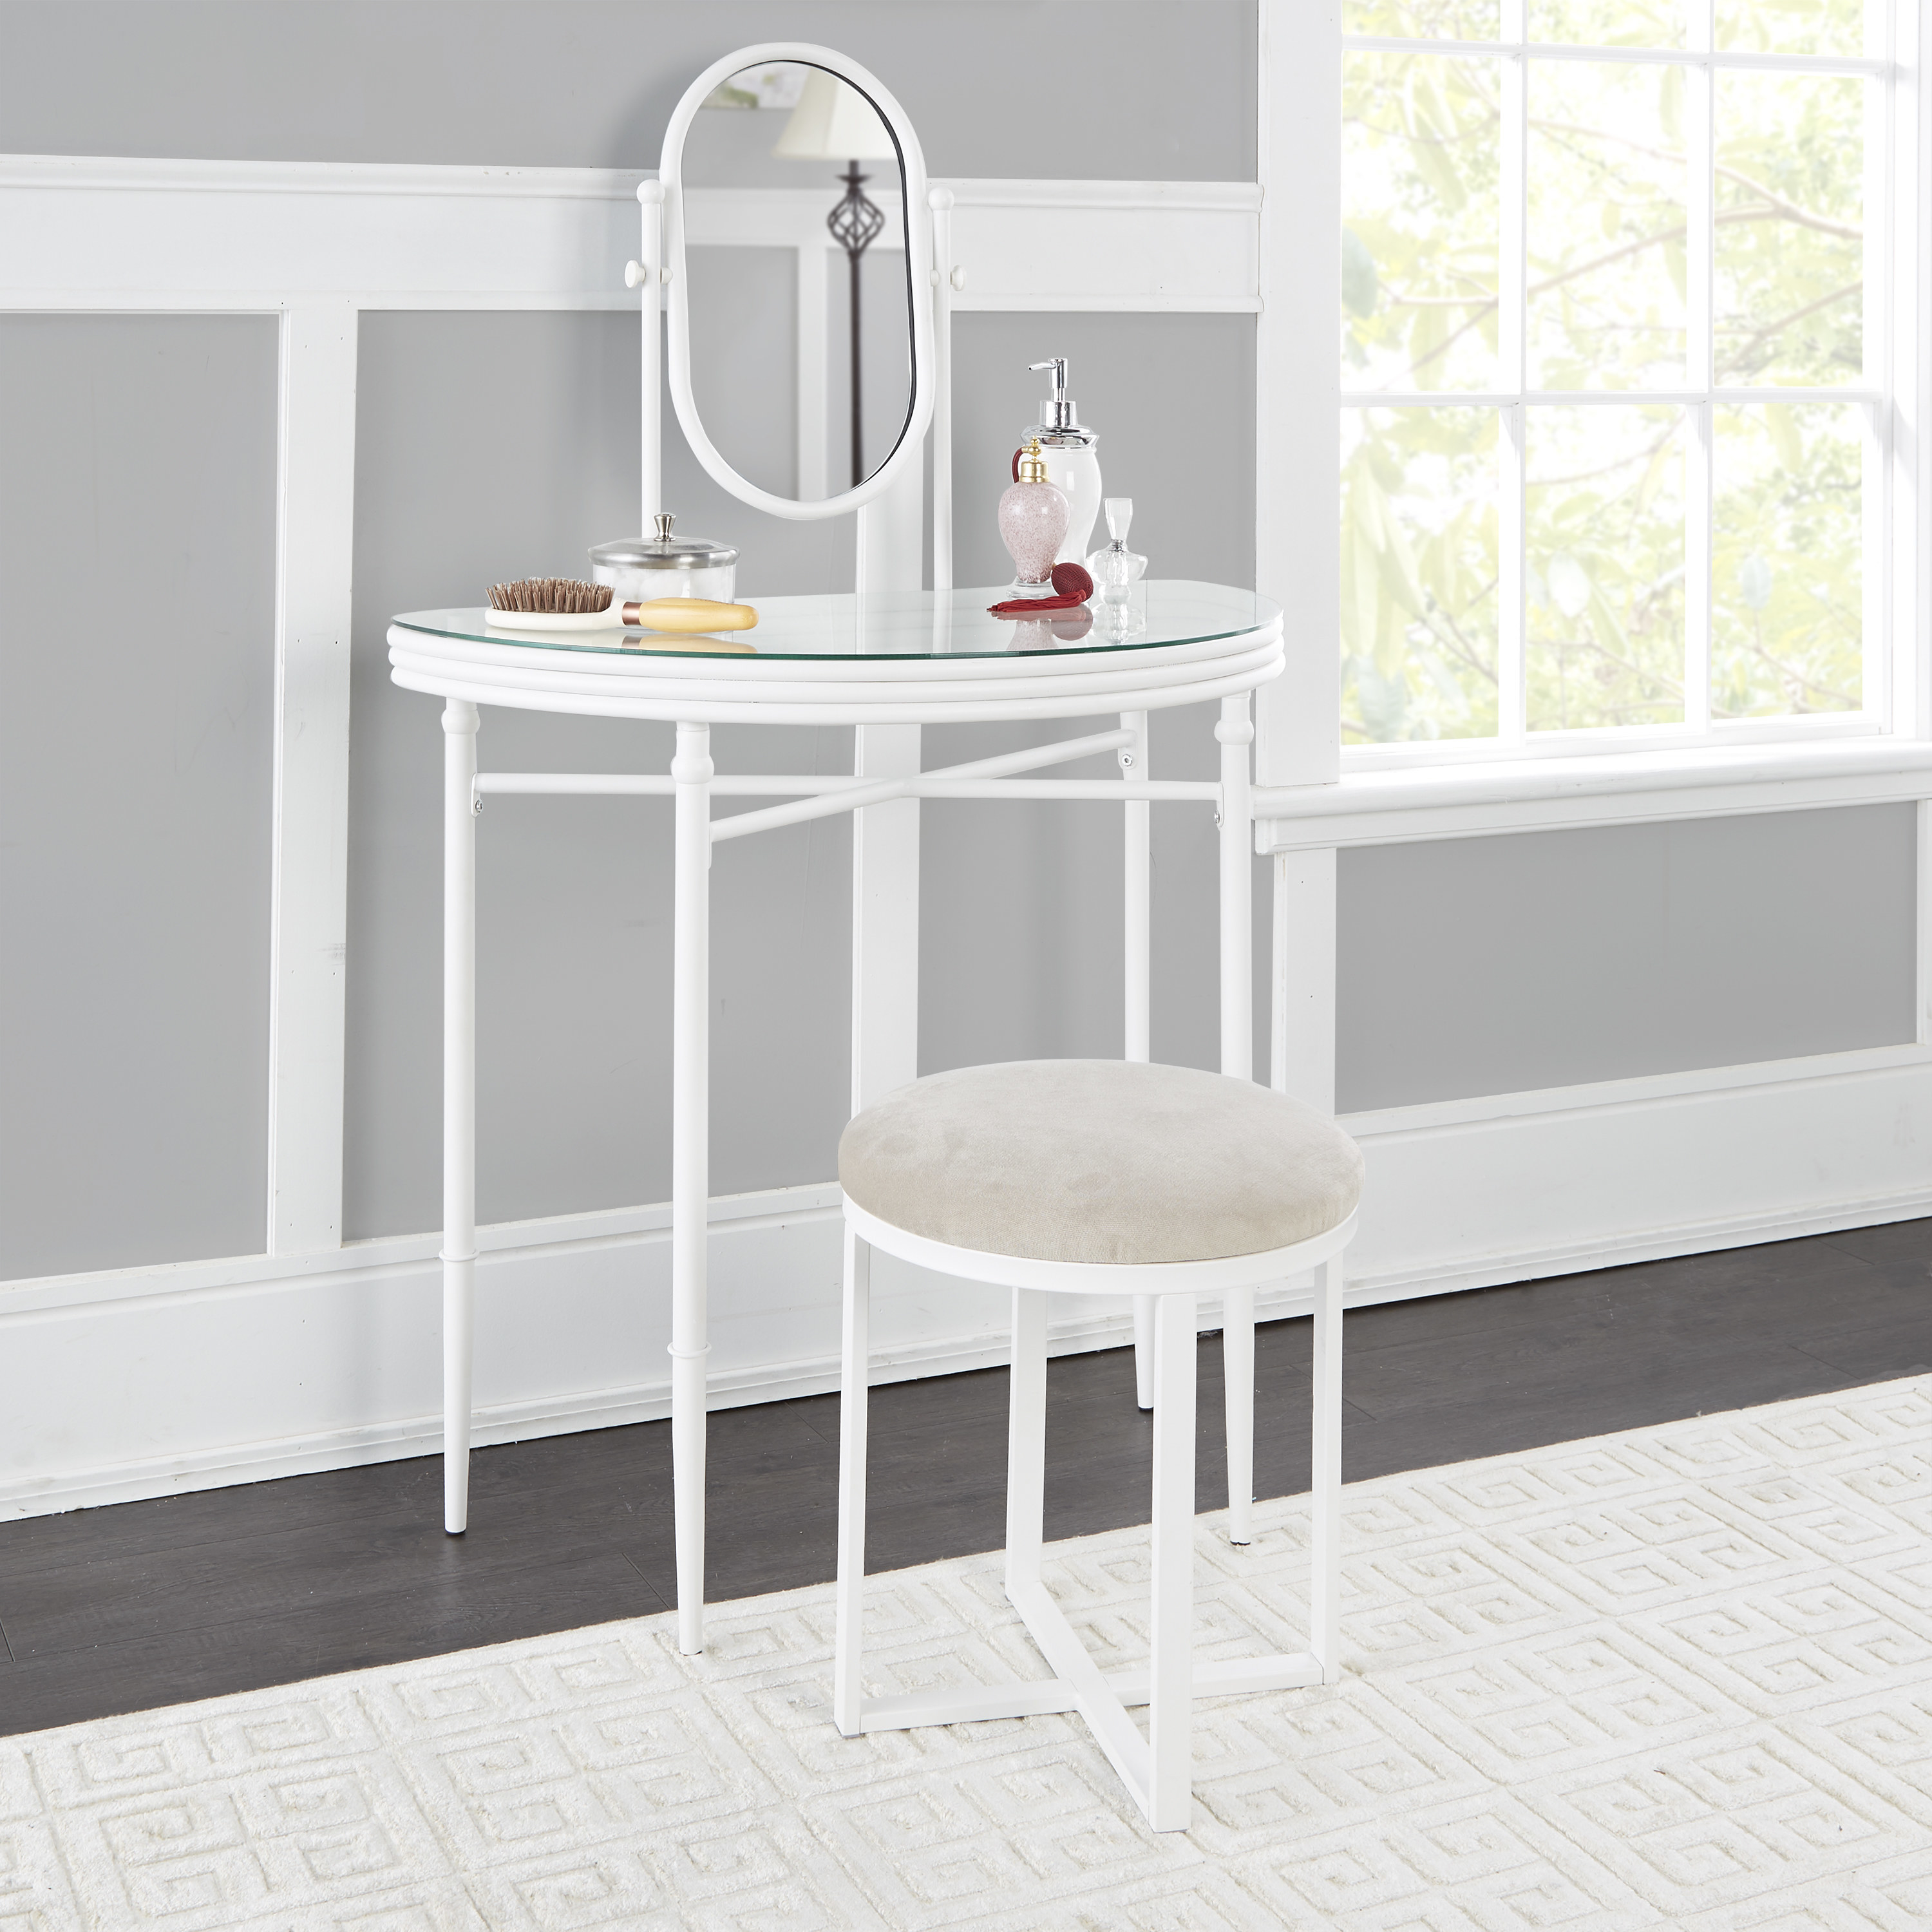 a white metal vanity with a glass top, an oval mirror, and a white metal cushioned stool